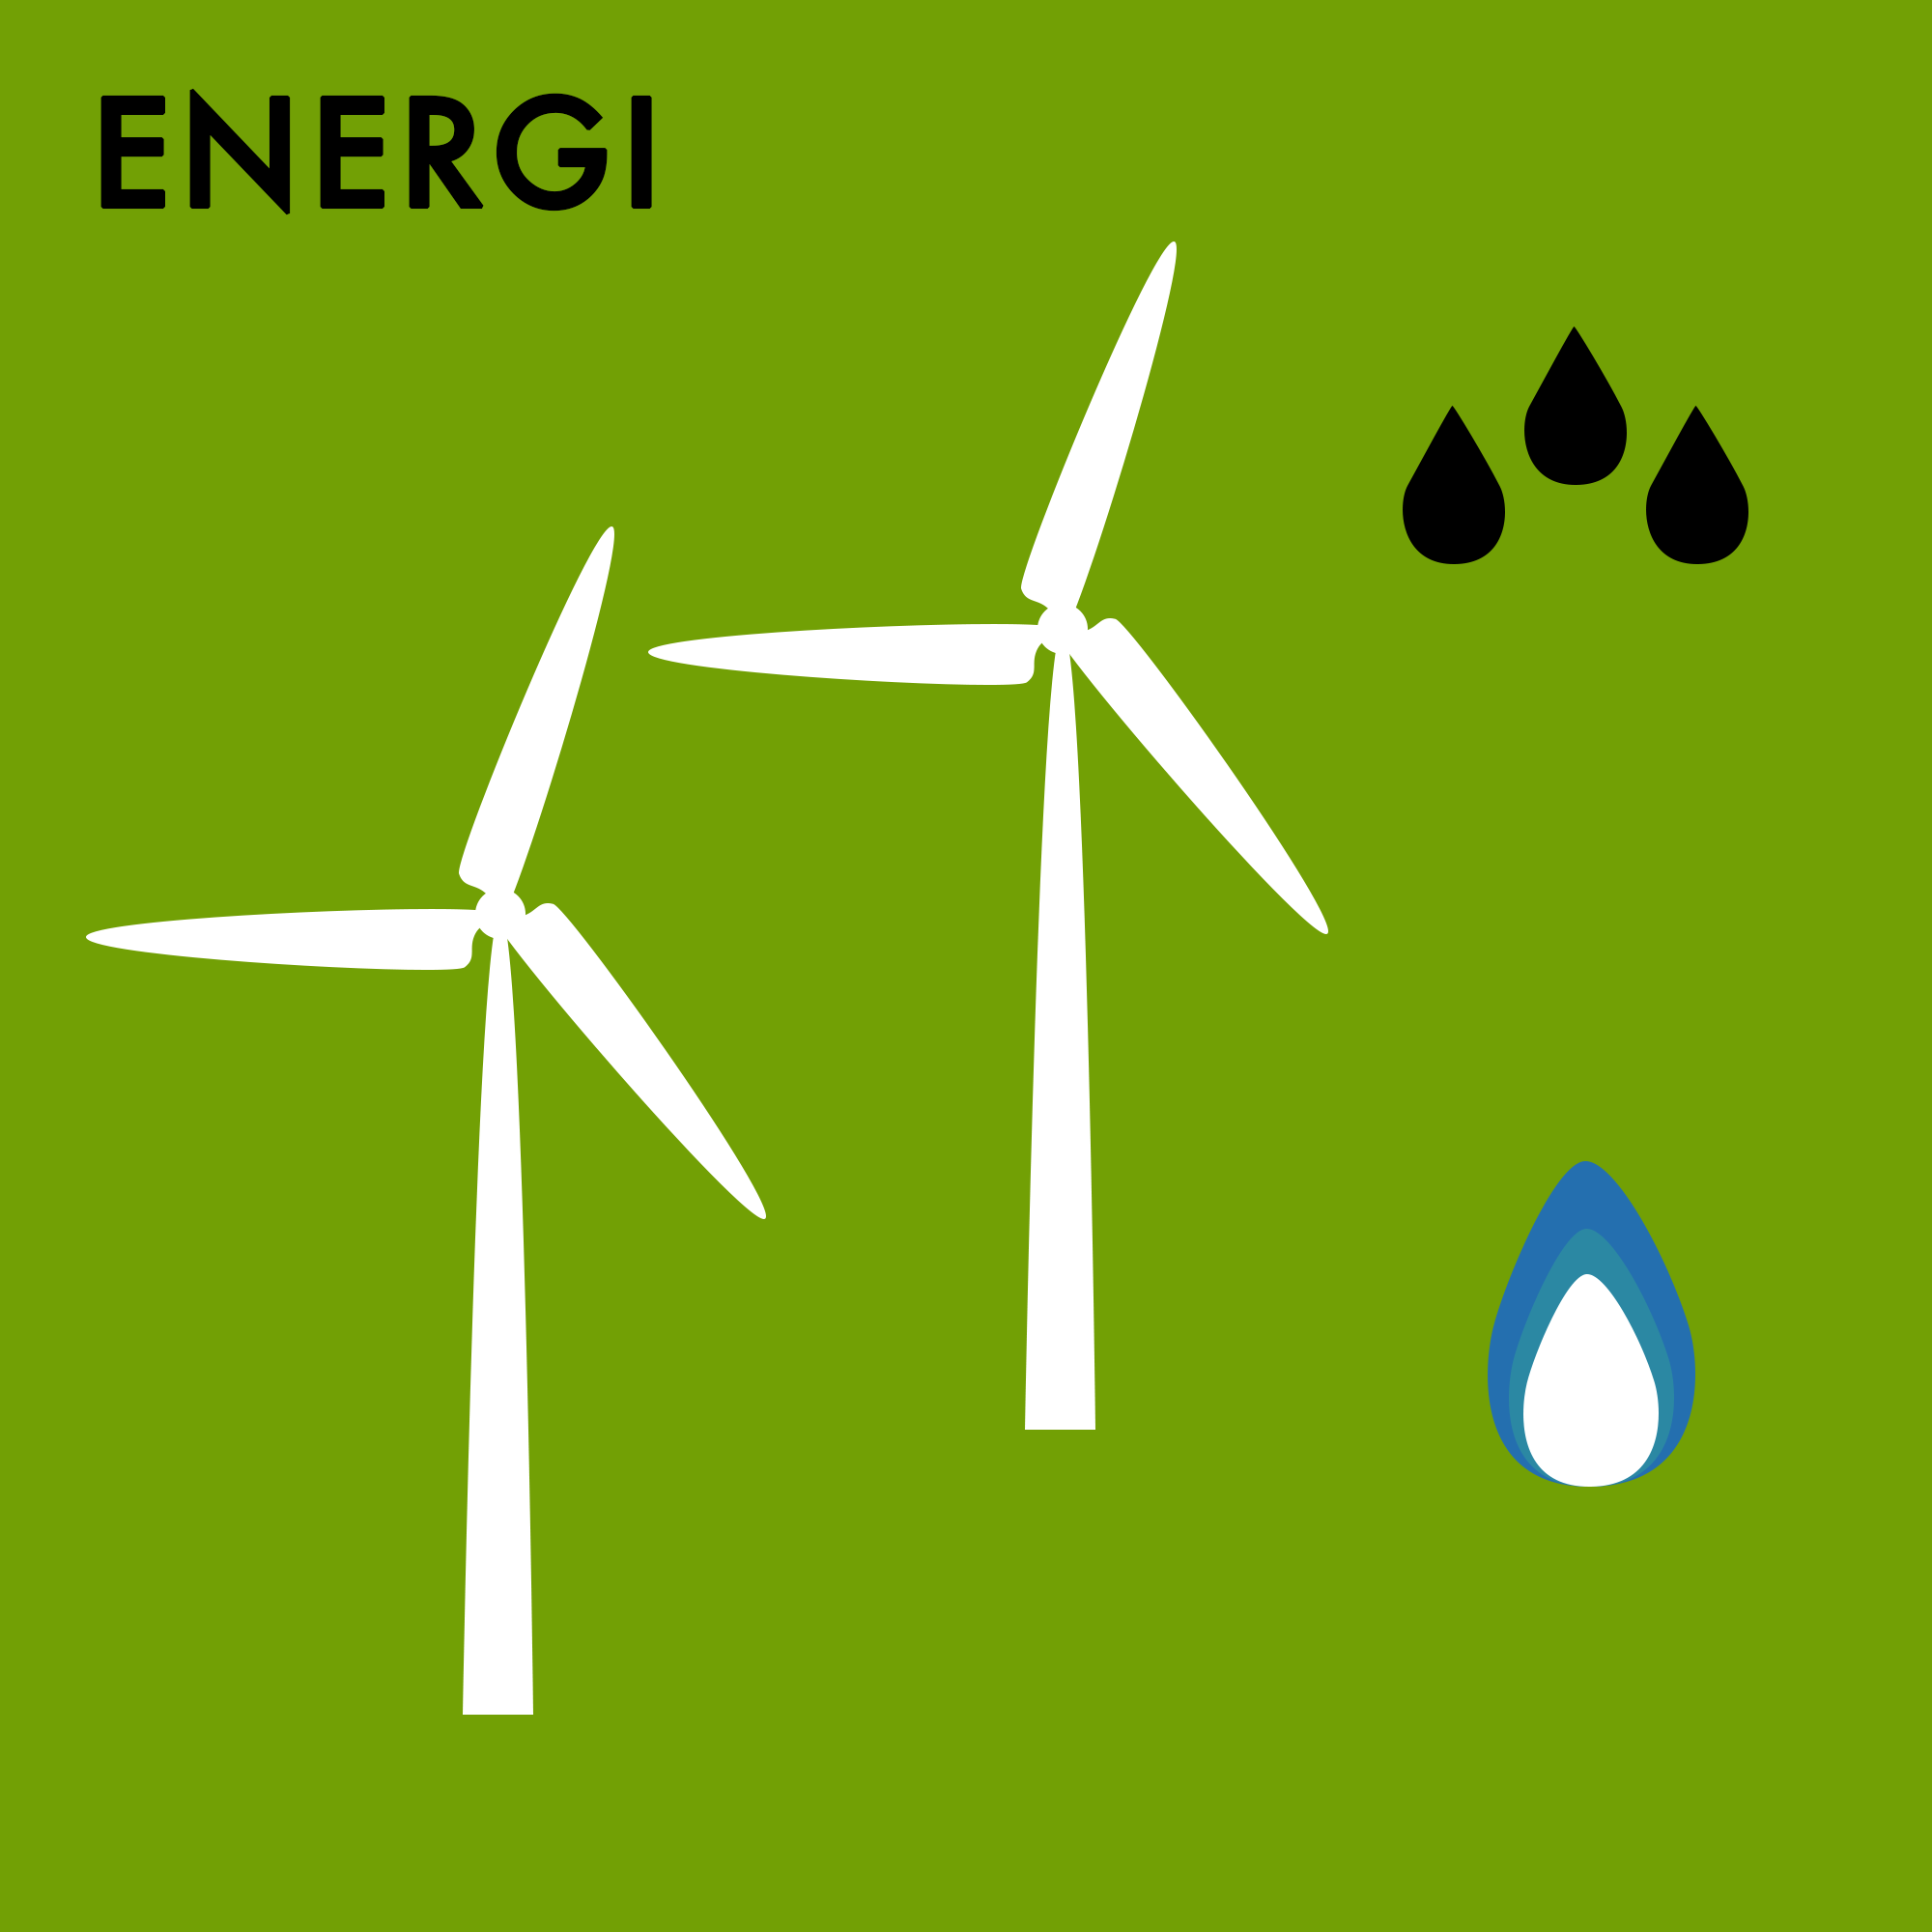 energy-a.png